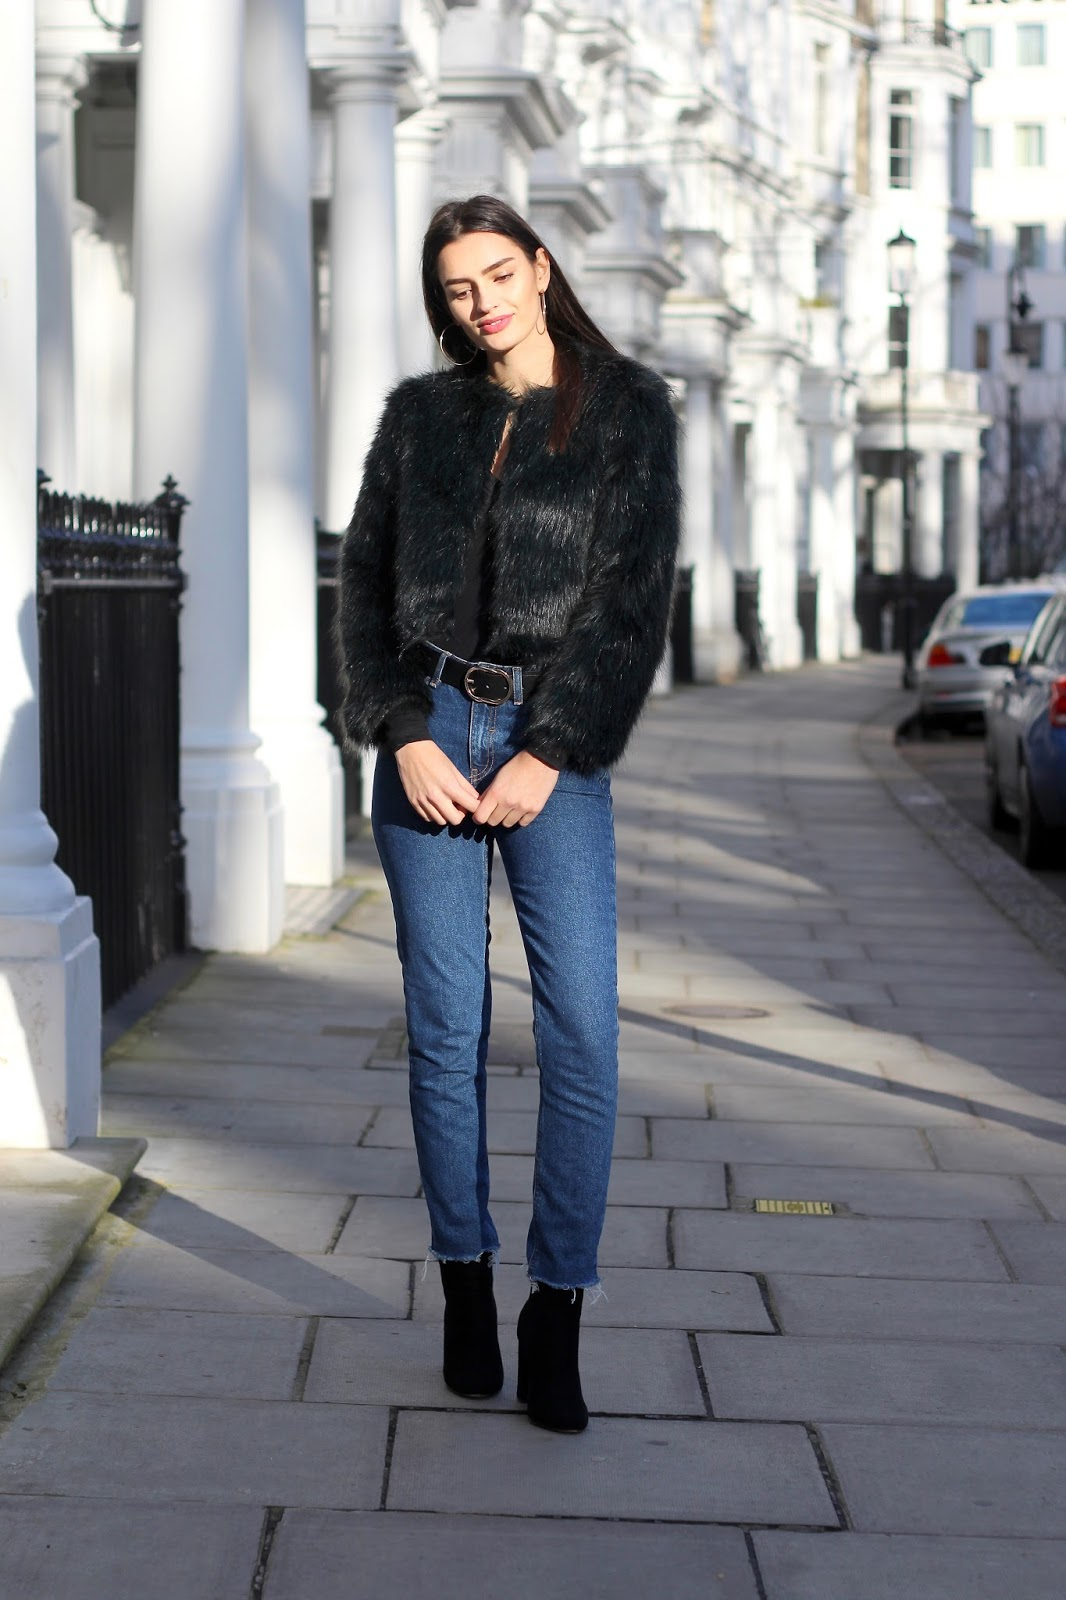 personal style blog peexo fashion london